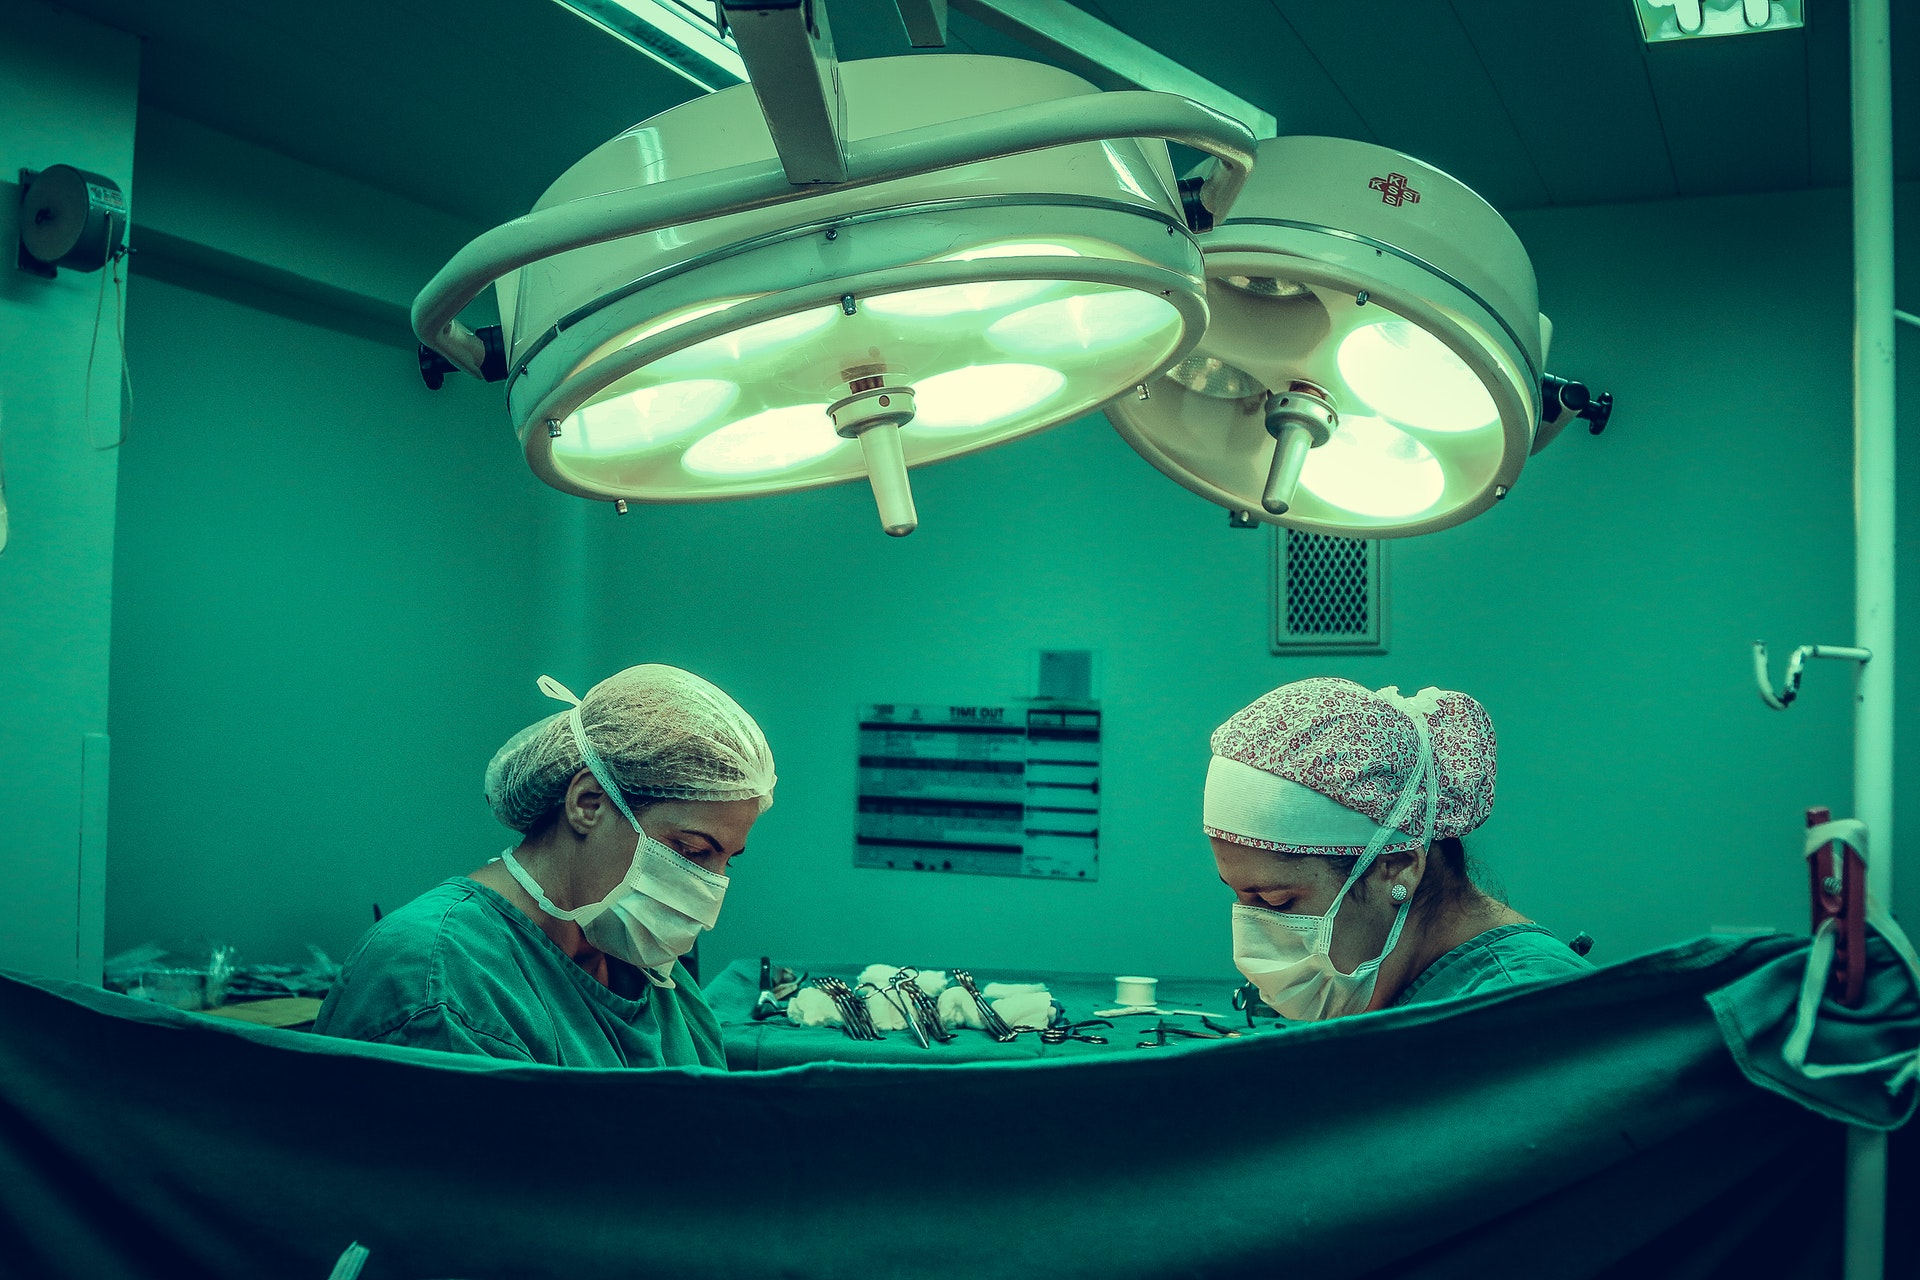 Elective Surgeries Resume, Waiting Lists Unlikely to Soon Diminish